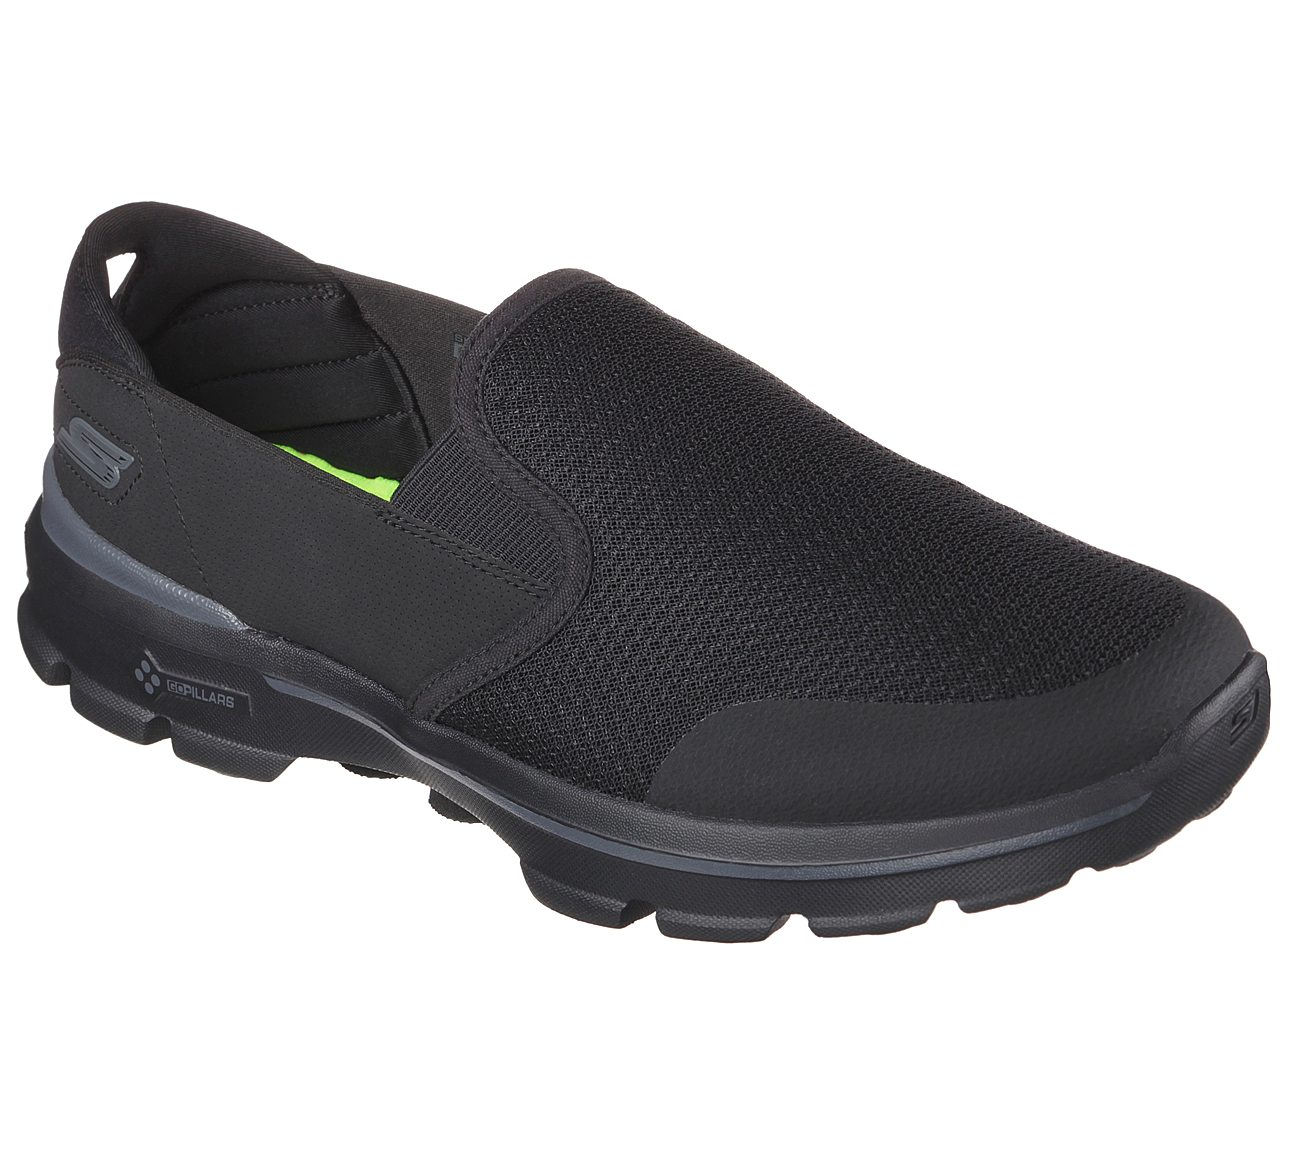 Buy SKECHERS Skechers GOwalk 3 - Charge